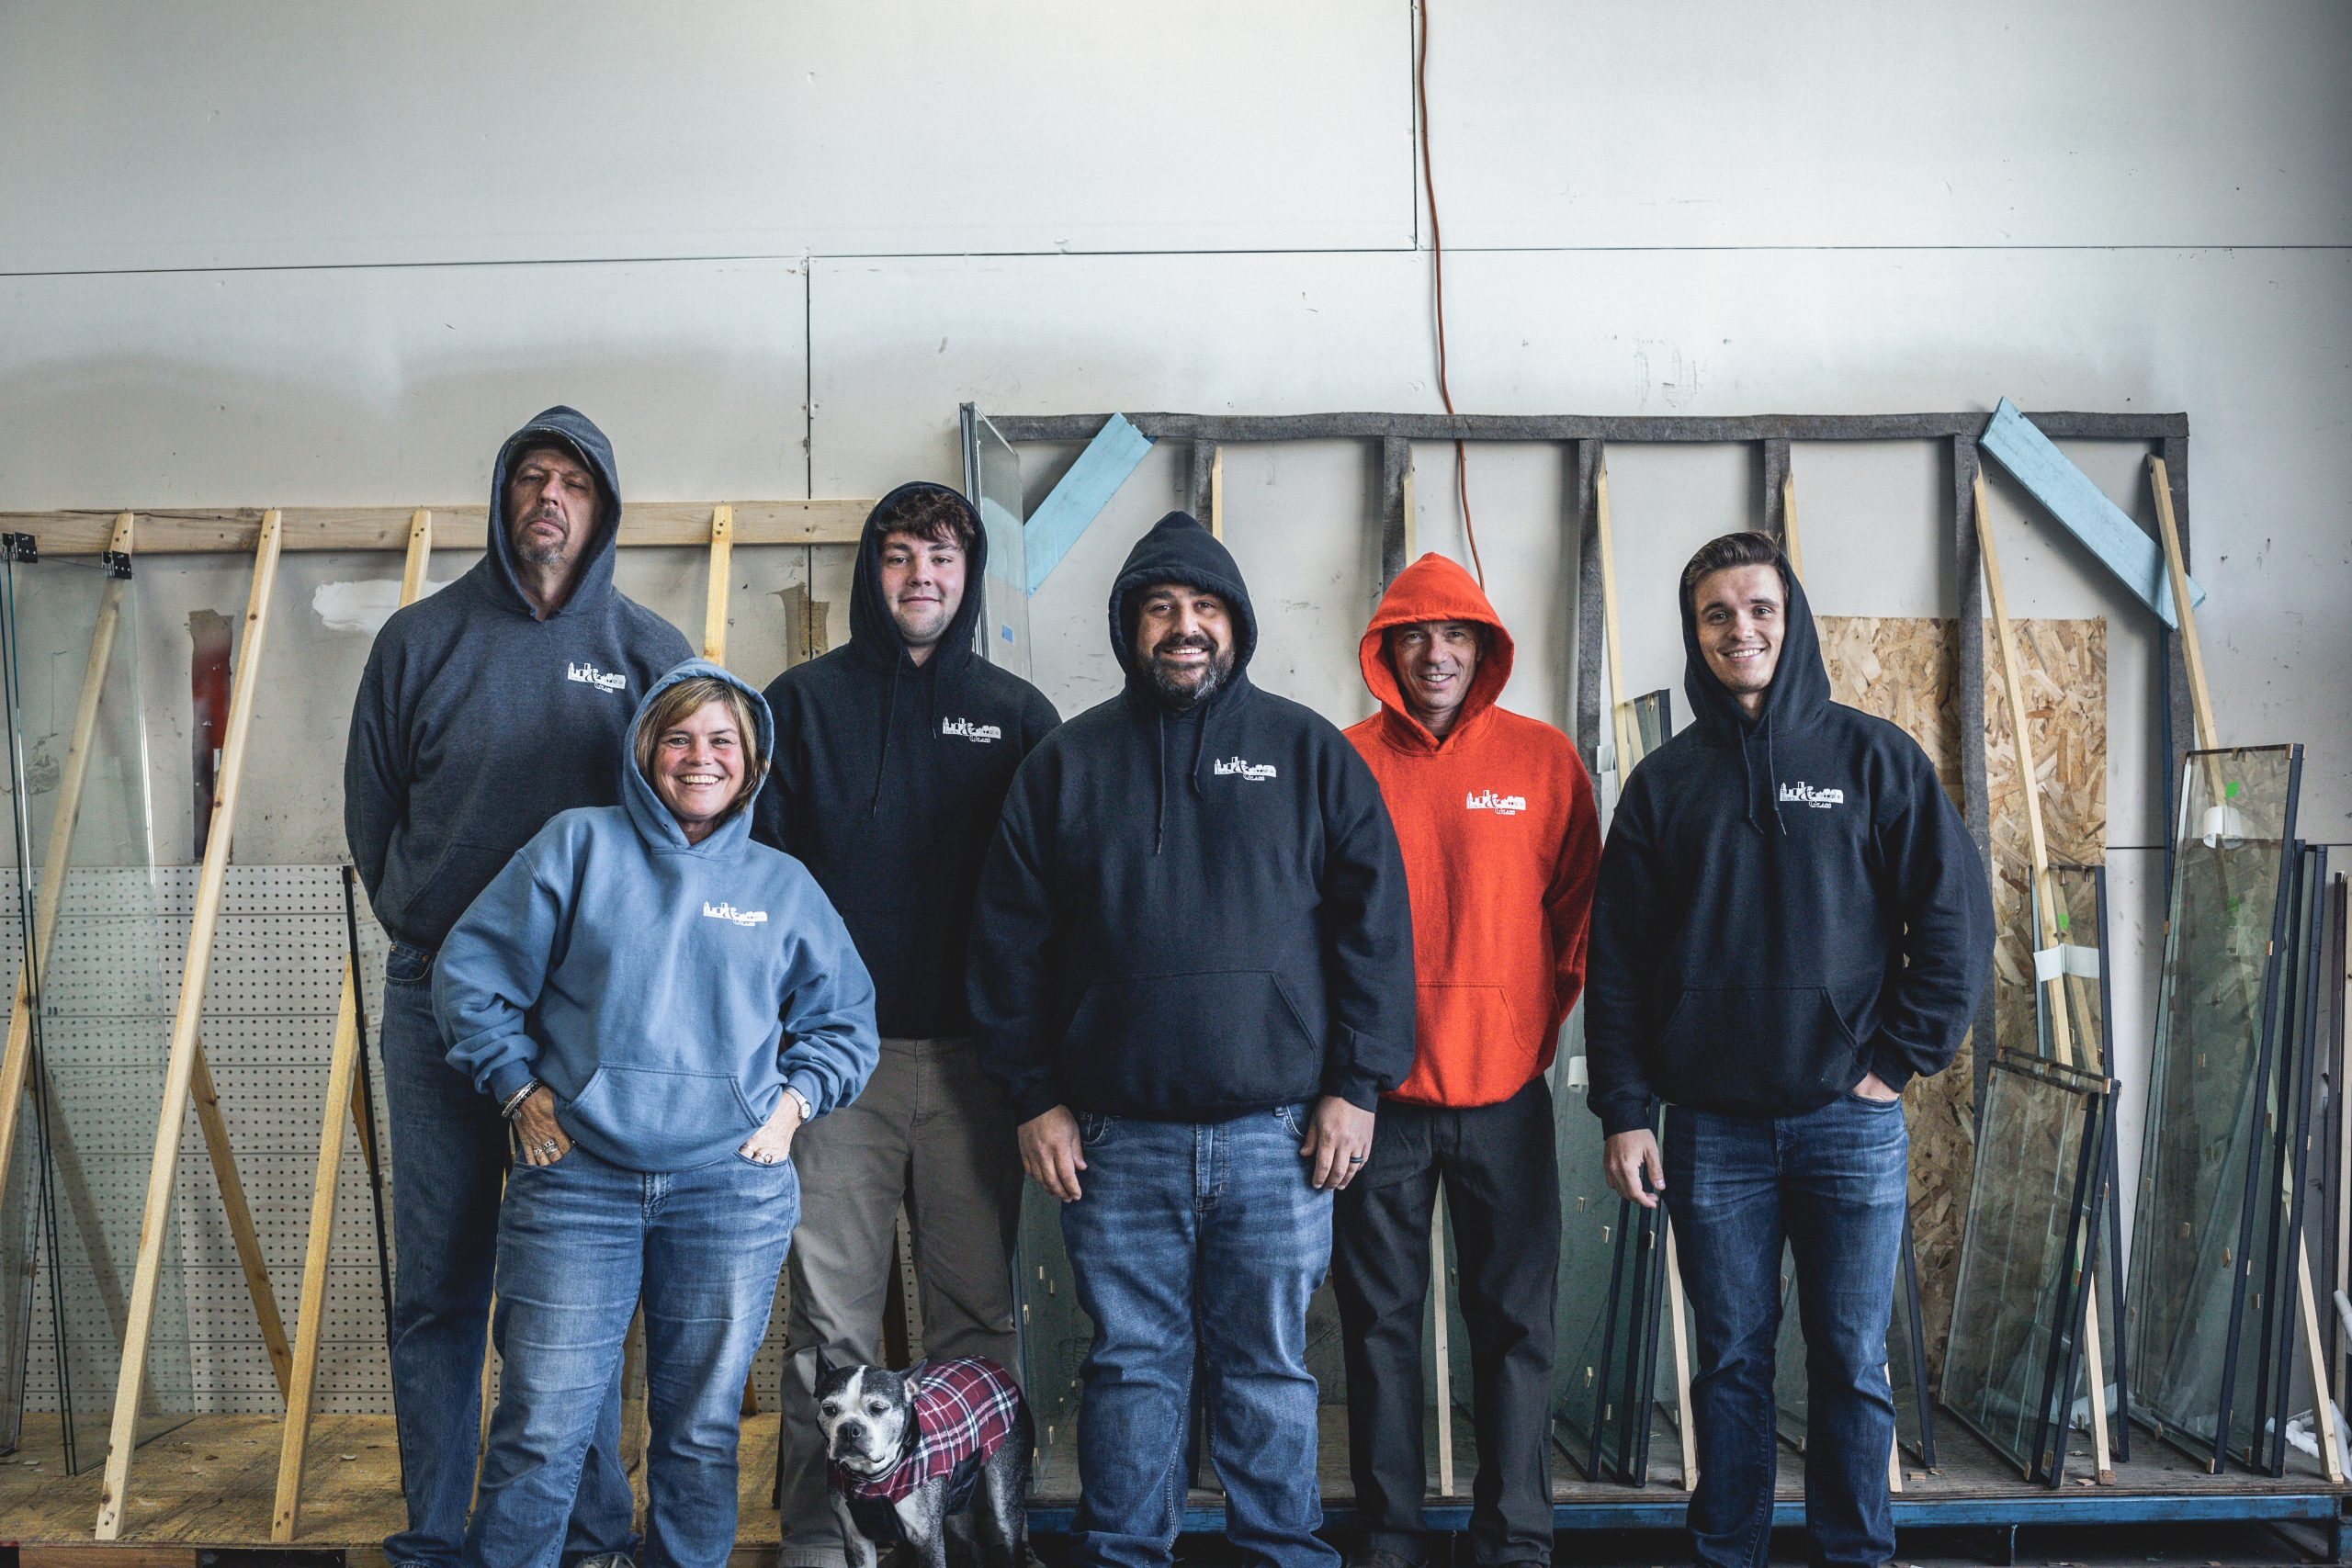 The Troutdale window repair crew at T&C Glass